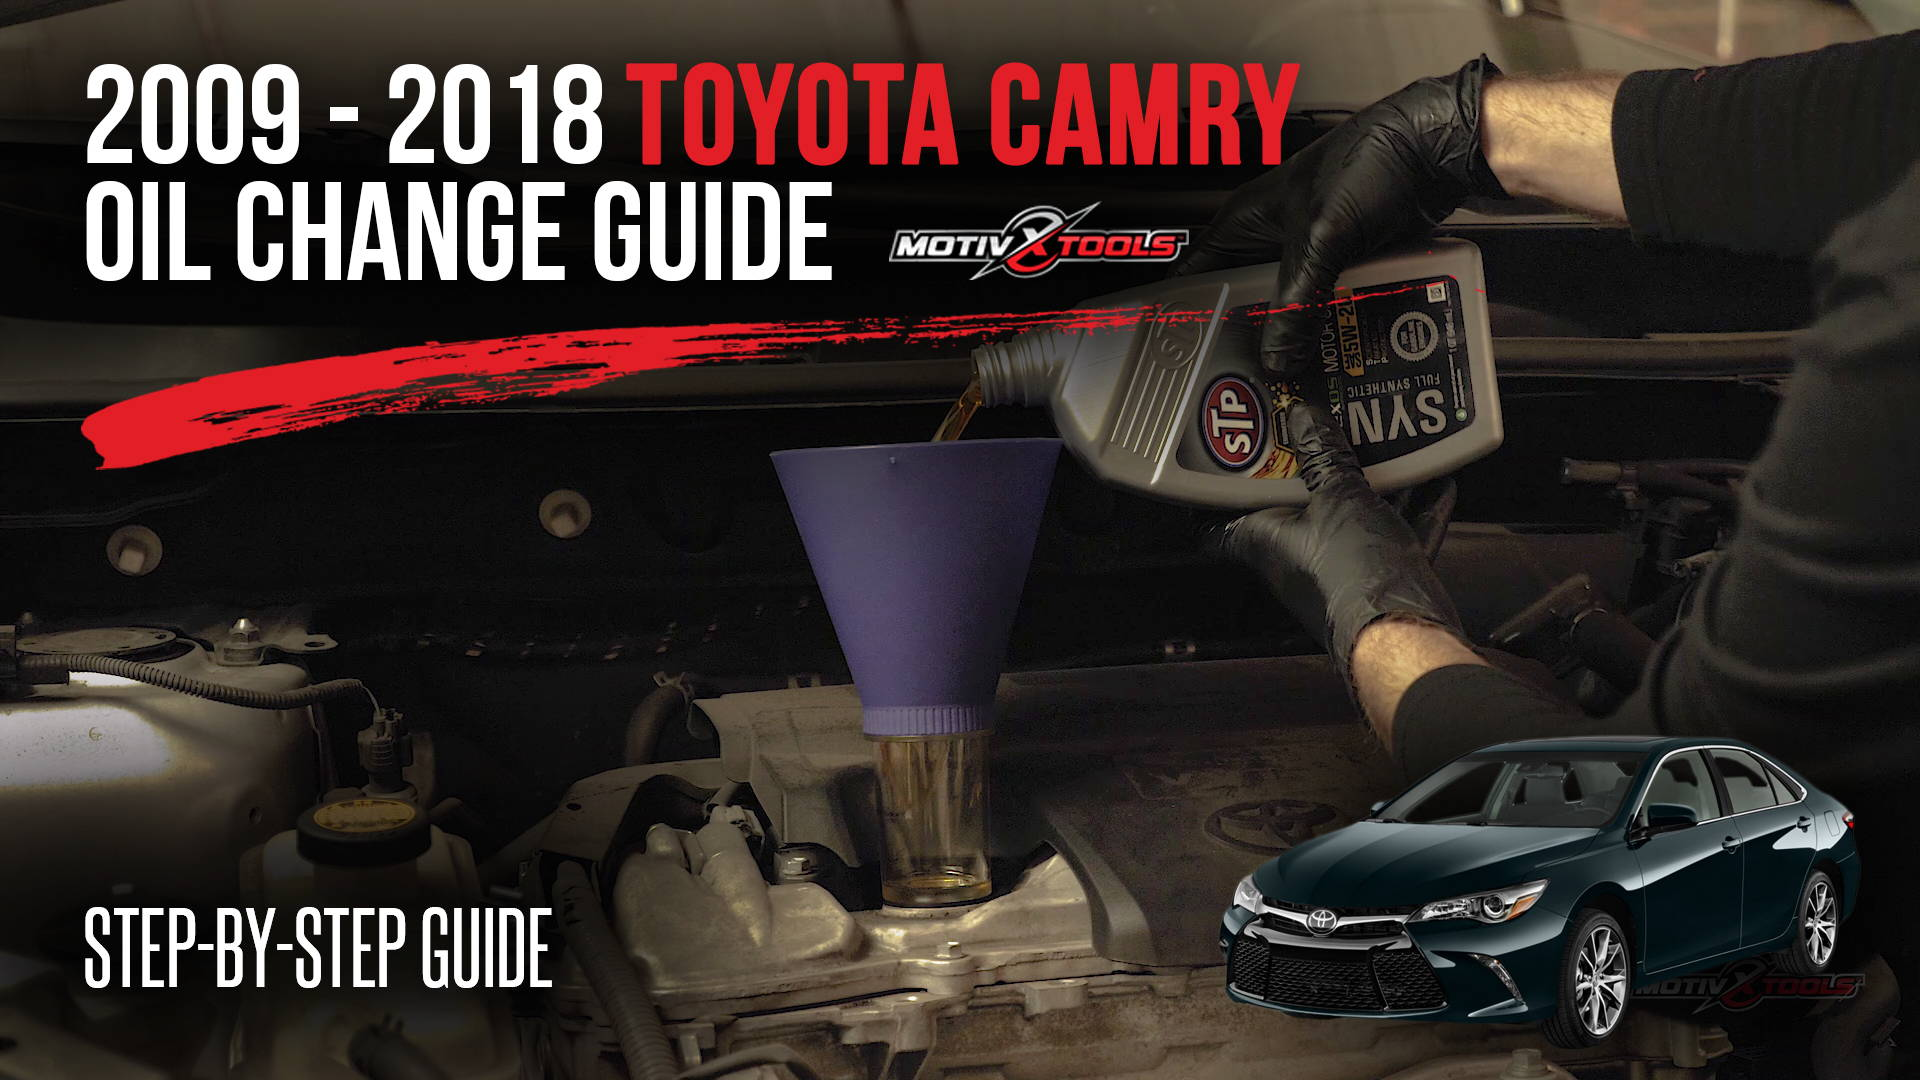 2009 2018 Toyota Camry Oil Change Guide Motivx Tools